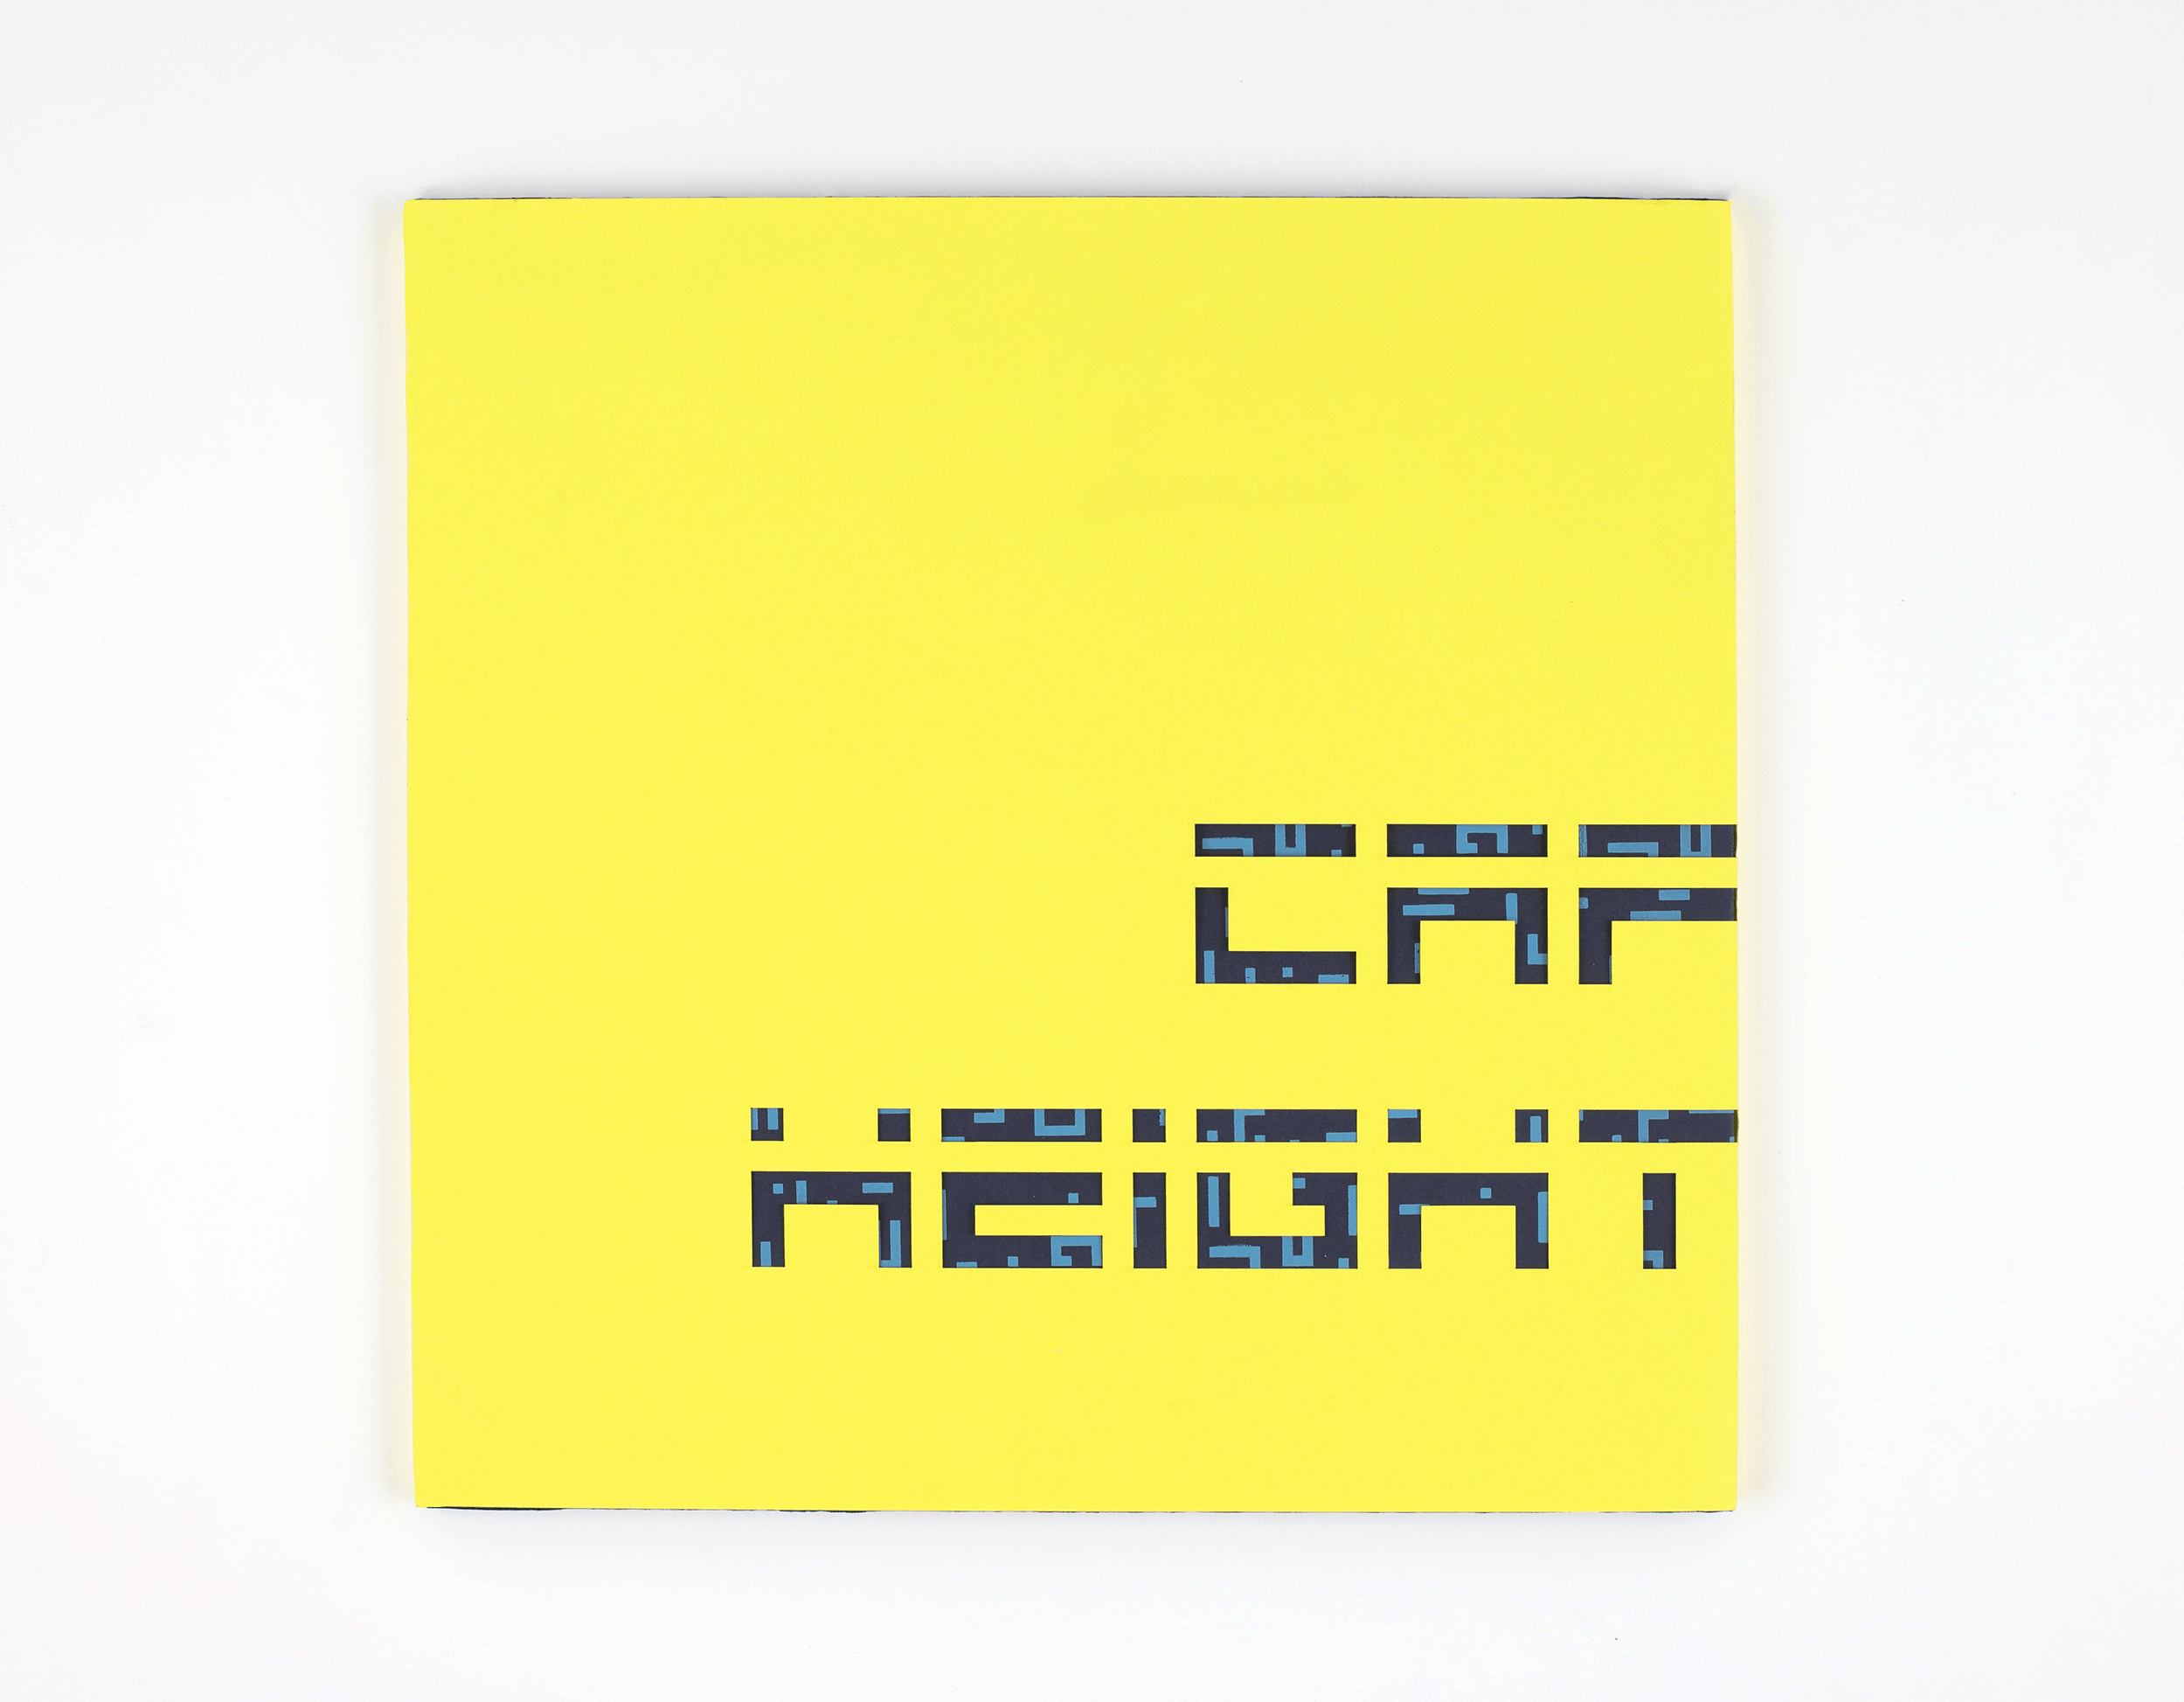 CapHeight13.png